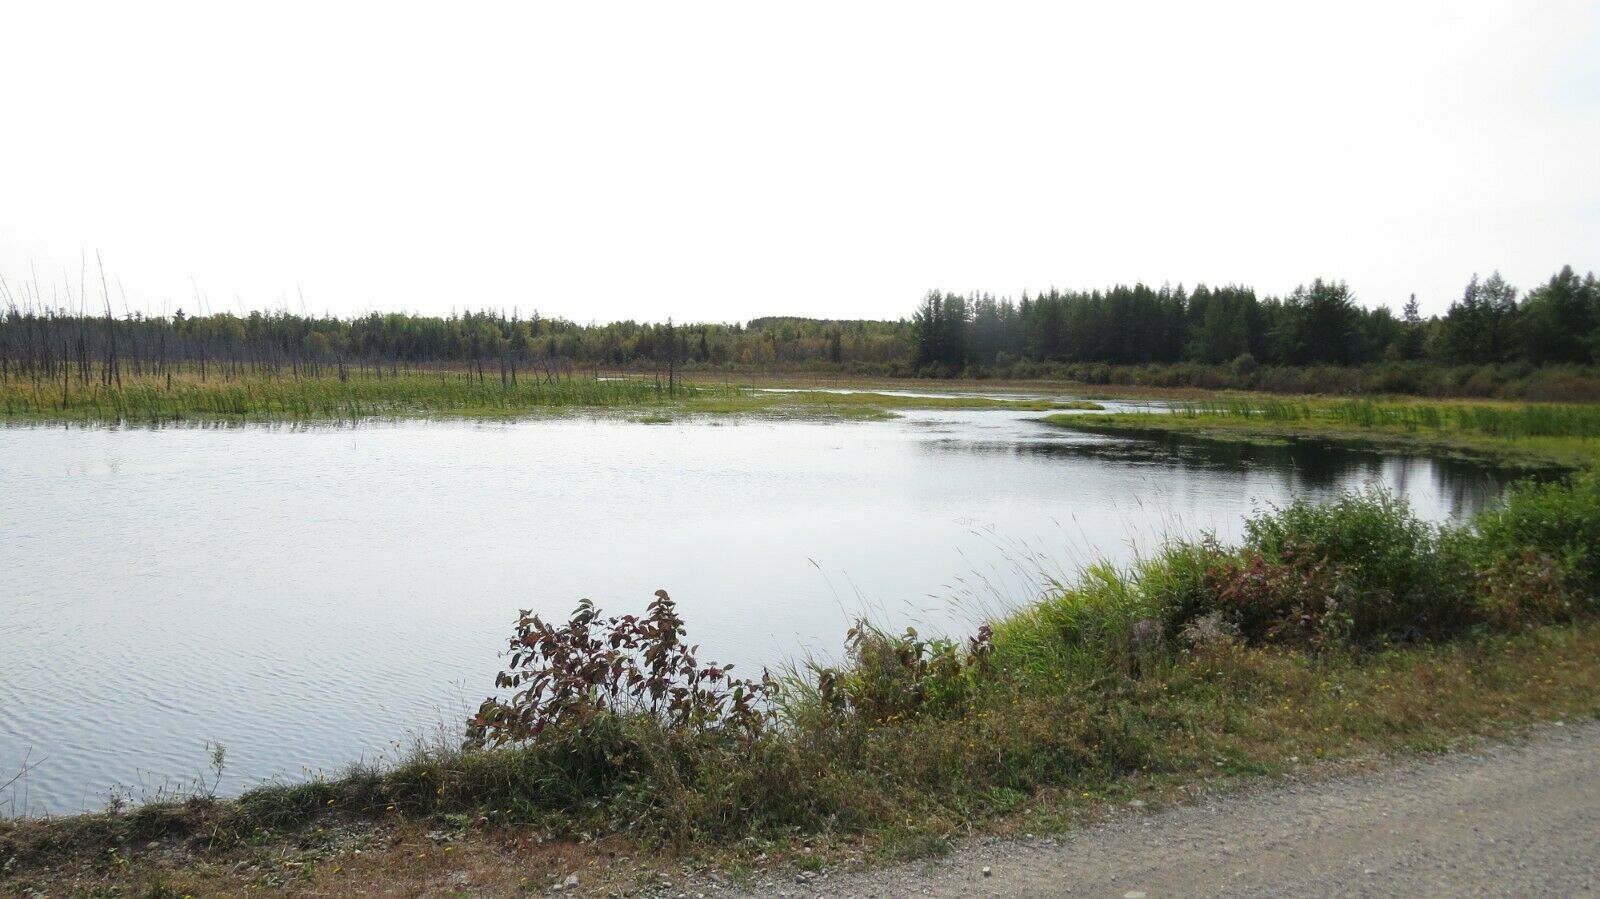 OWN 87 ACRES /- OF LAND IN NORTHERN MAINE NEXT TO THE CANADIAN BORDER  - $681.00